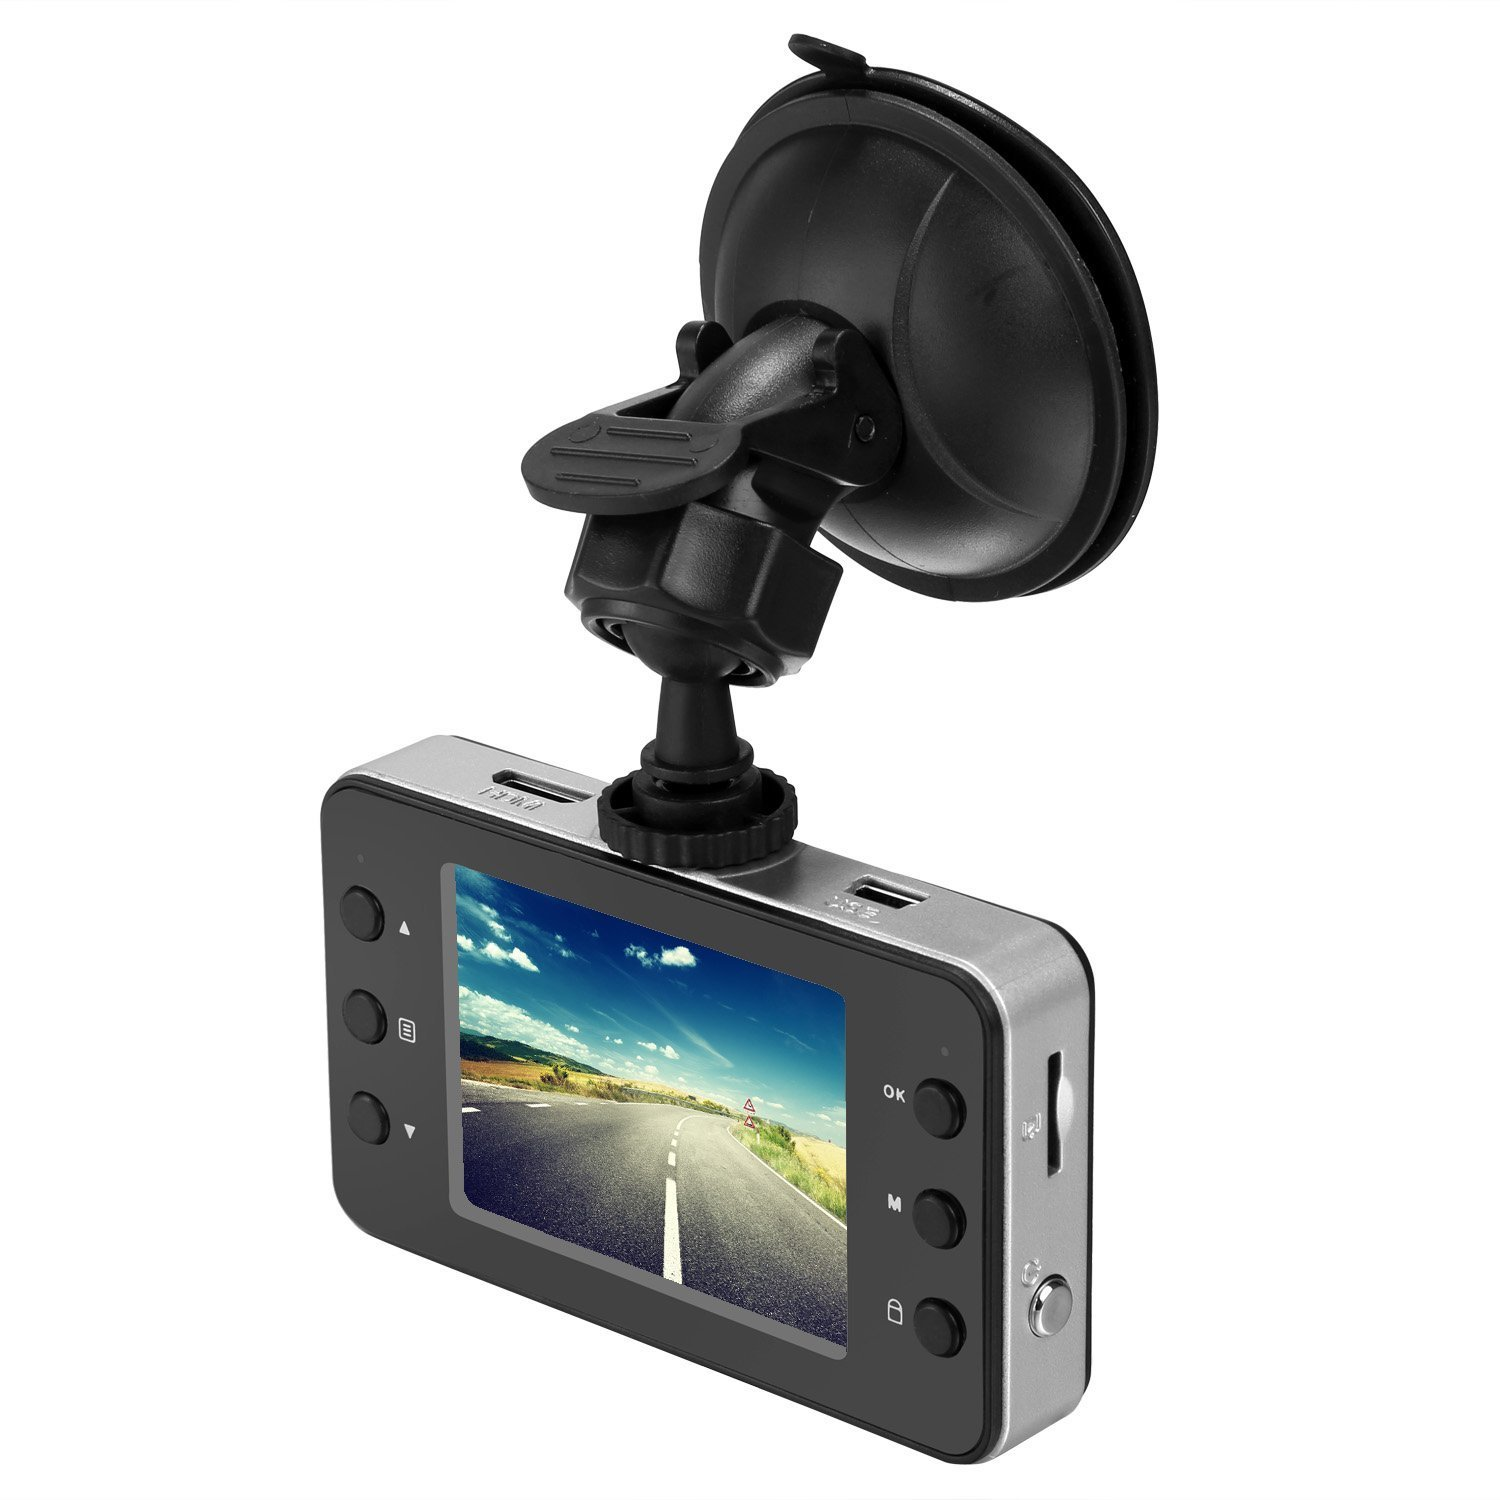 COOCHEER 1080 Full HD Vehicle Blackbox DVR Car Driving Recorder Camcorder